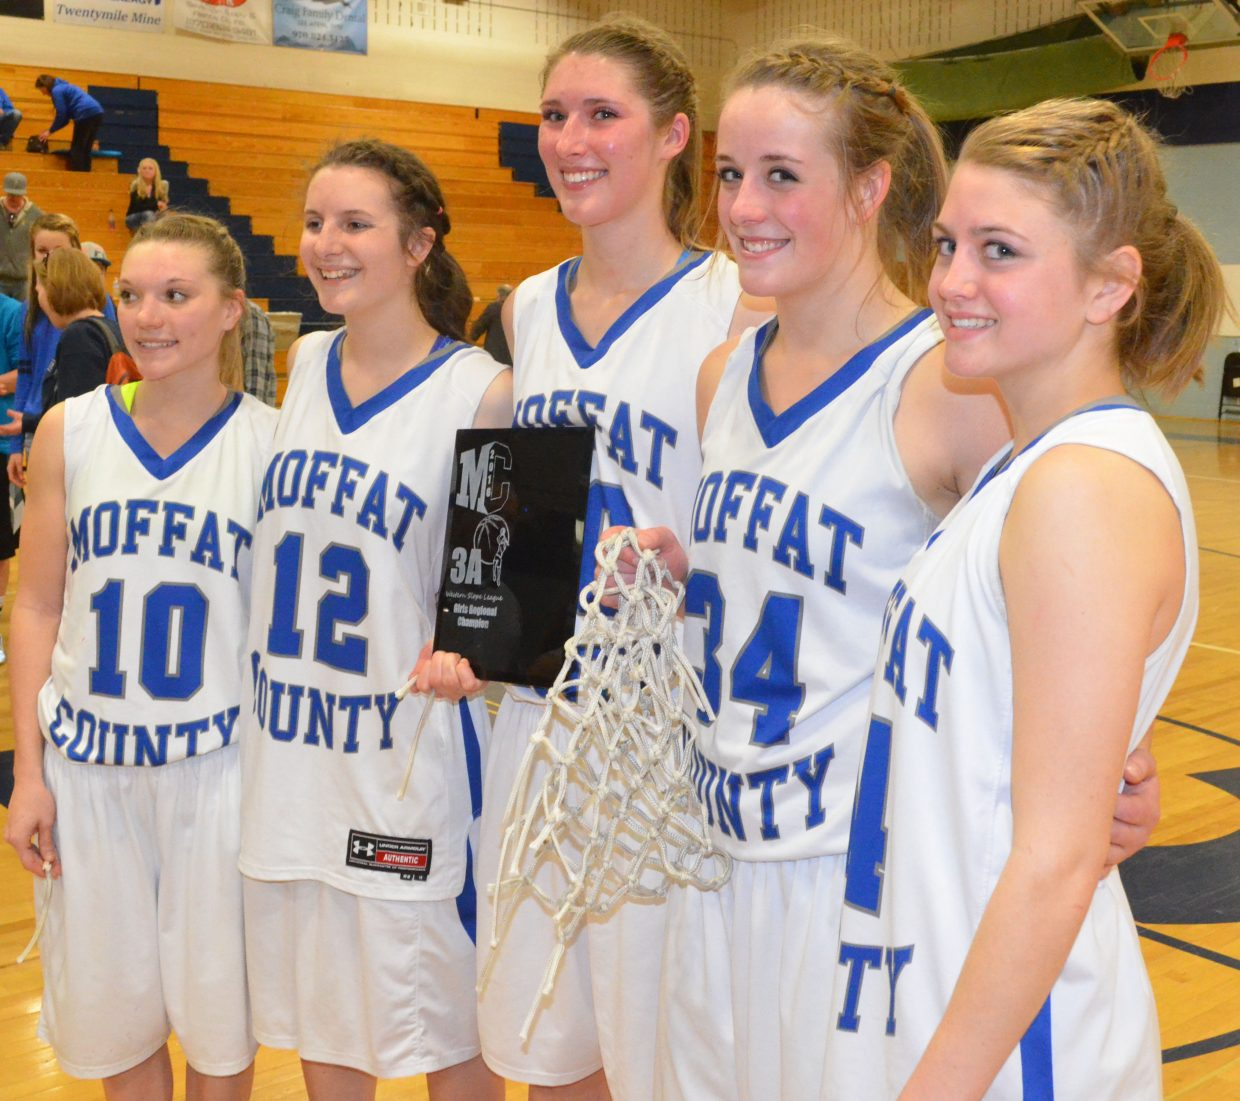 From left, Moffat County High School seniors Kayla Pinnt, Hannah Walker, Katia Voloshin, Morgan Lawton and Leah Camilletti gather at center court with the Lady Bulldogs' regional championship plaque and ceremonial net, cut down from the rim after a Saturday win against Platte Valley. The Sweet 16 game was the last home hoops event for the five seniors.